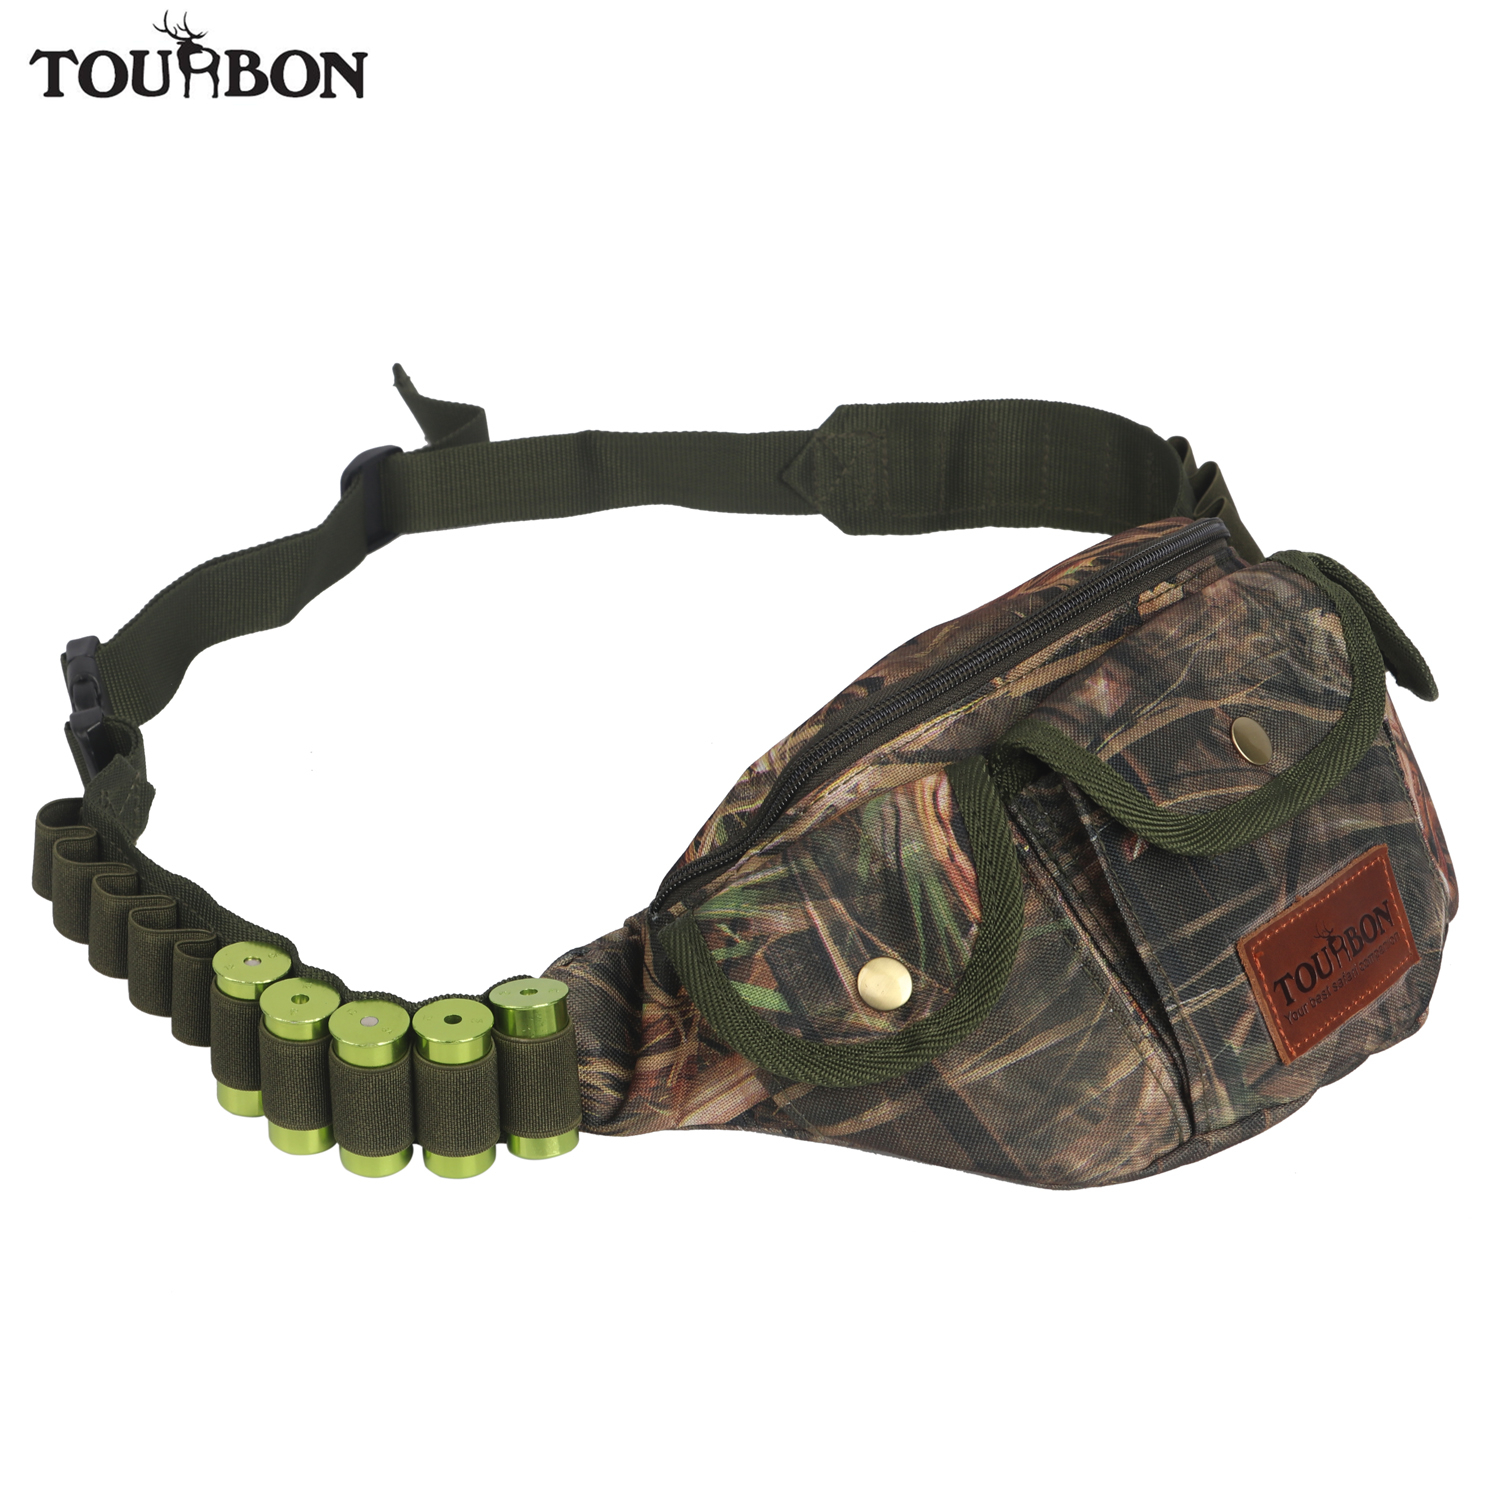 Tourbon Tactical Outdoor Hunting Shotgun 12 Gauge Cartridges Ammo Shells Bullet Belt Bag Waist Pouch Camo Sports Camping Hiking image